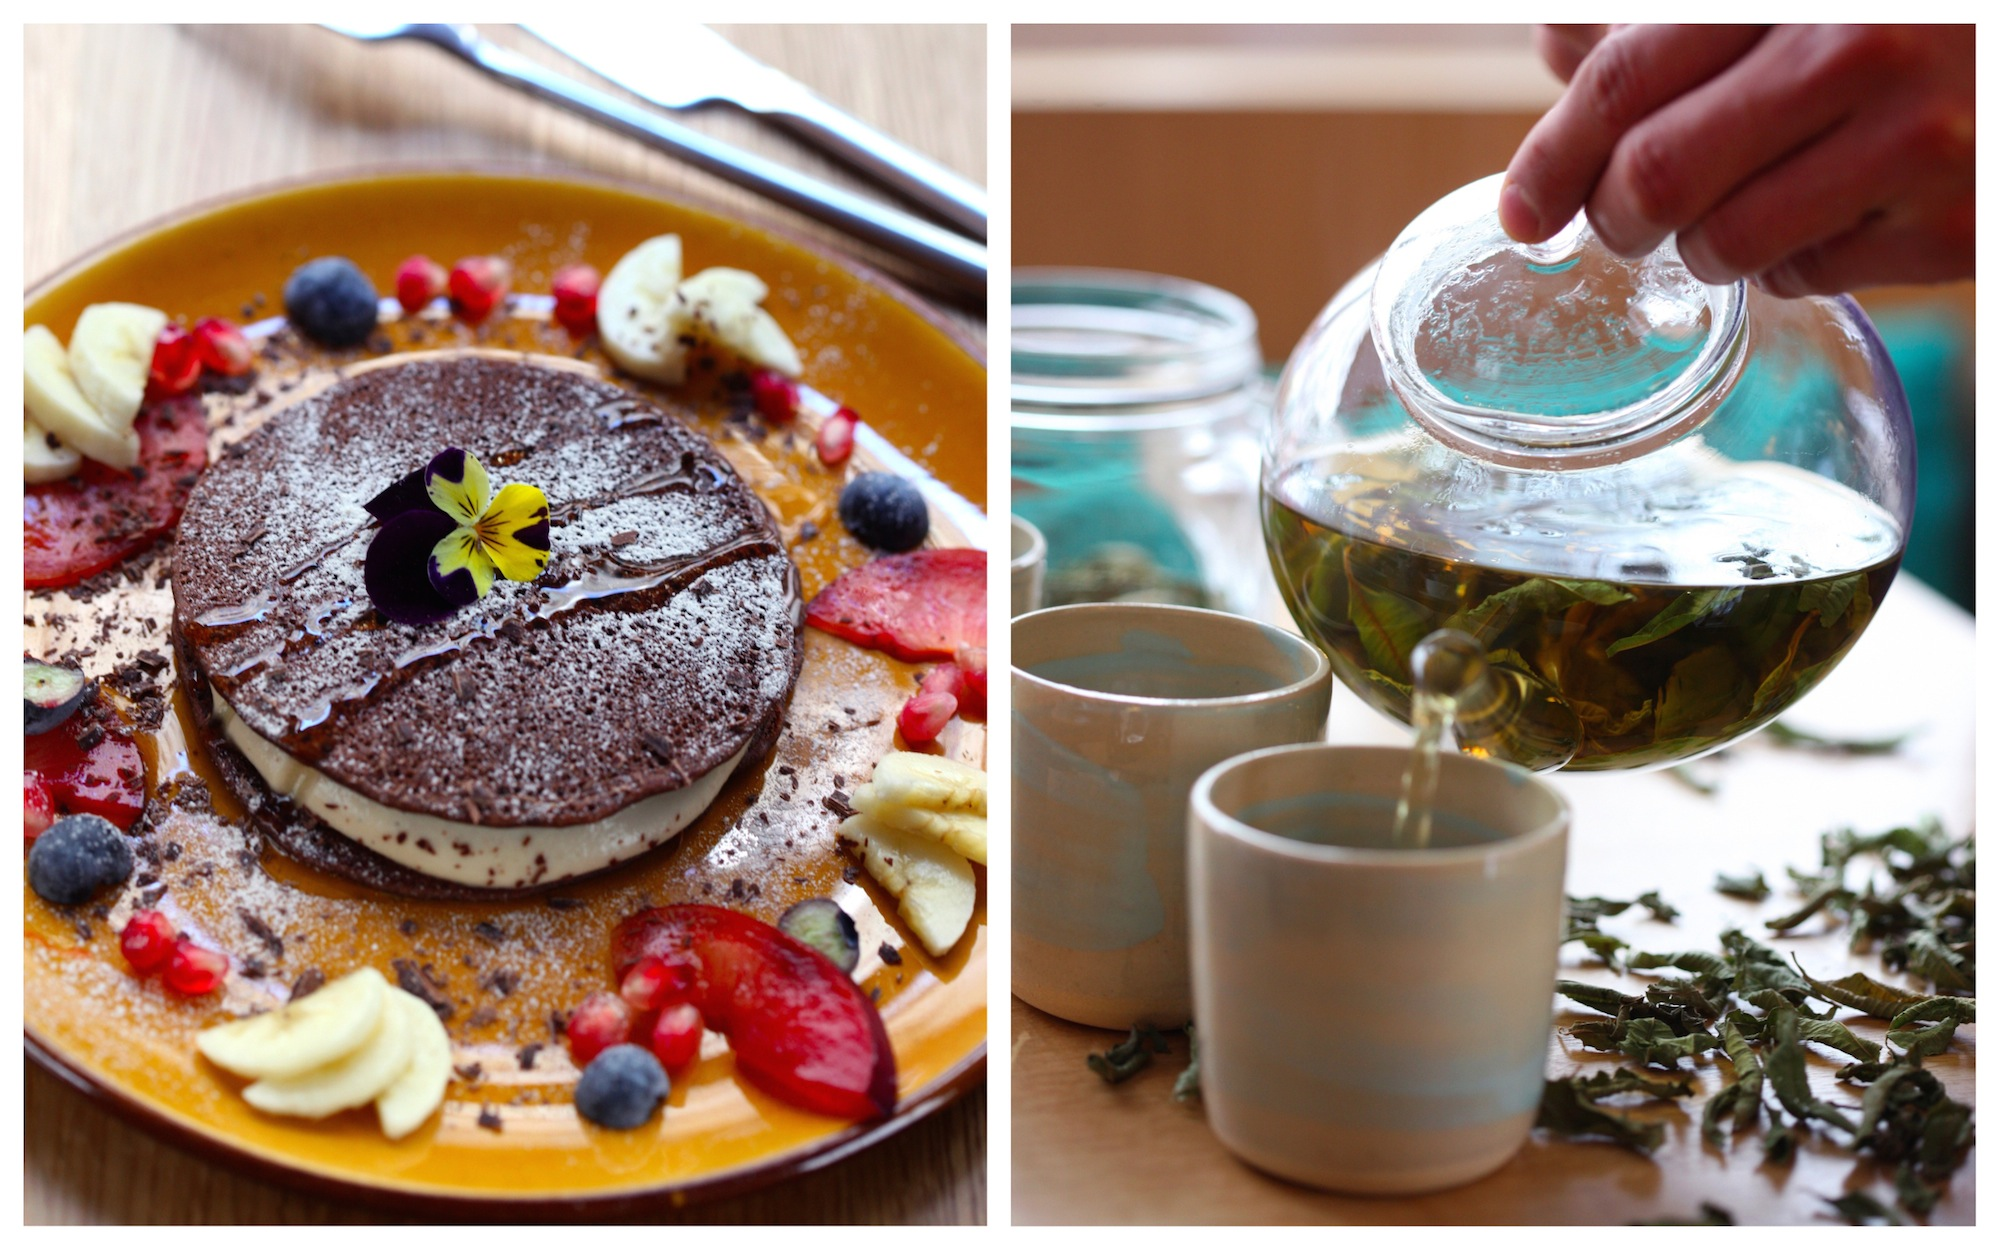 Veggie Magnifique round up of the top vegan spots in Paris for HiP Paris Blog like Le Potager de Charlotte for its chocolate cakes (left) and herbal teas (right).